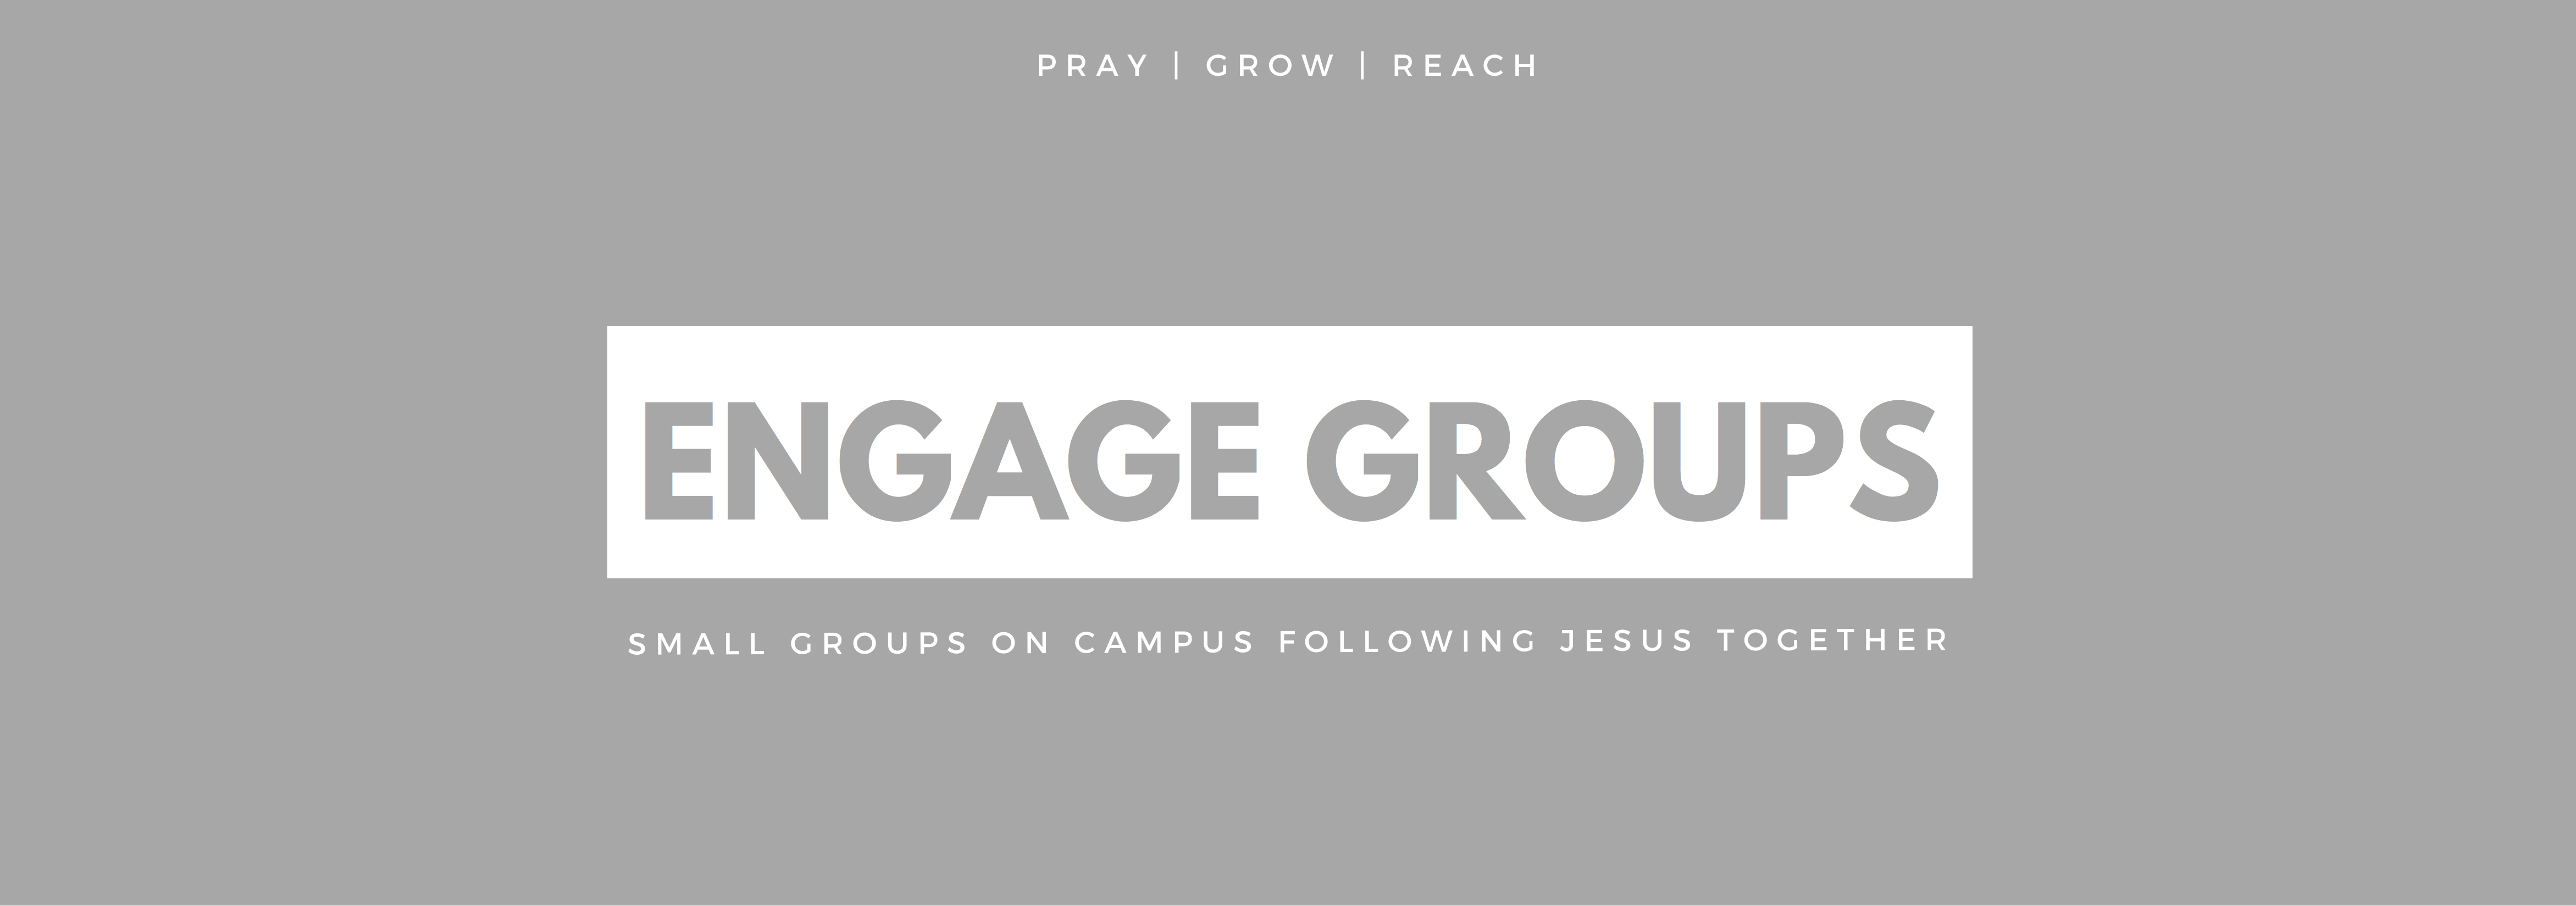 Engage Groups Grey JPEG